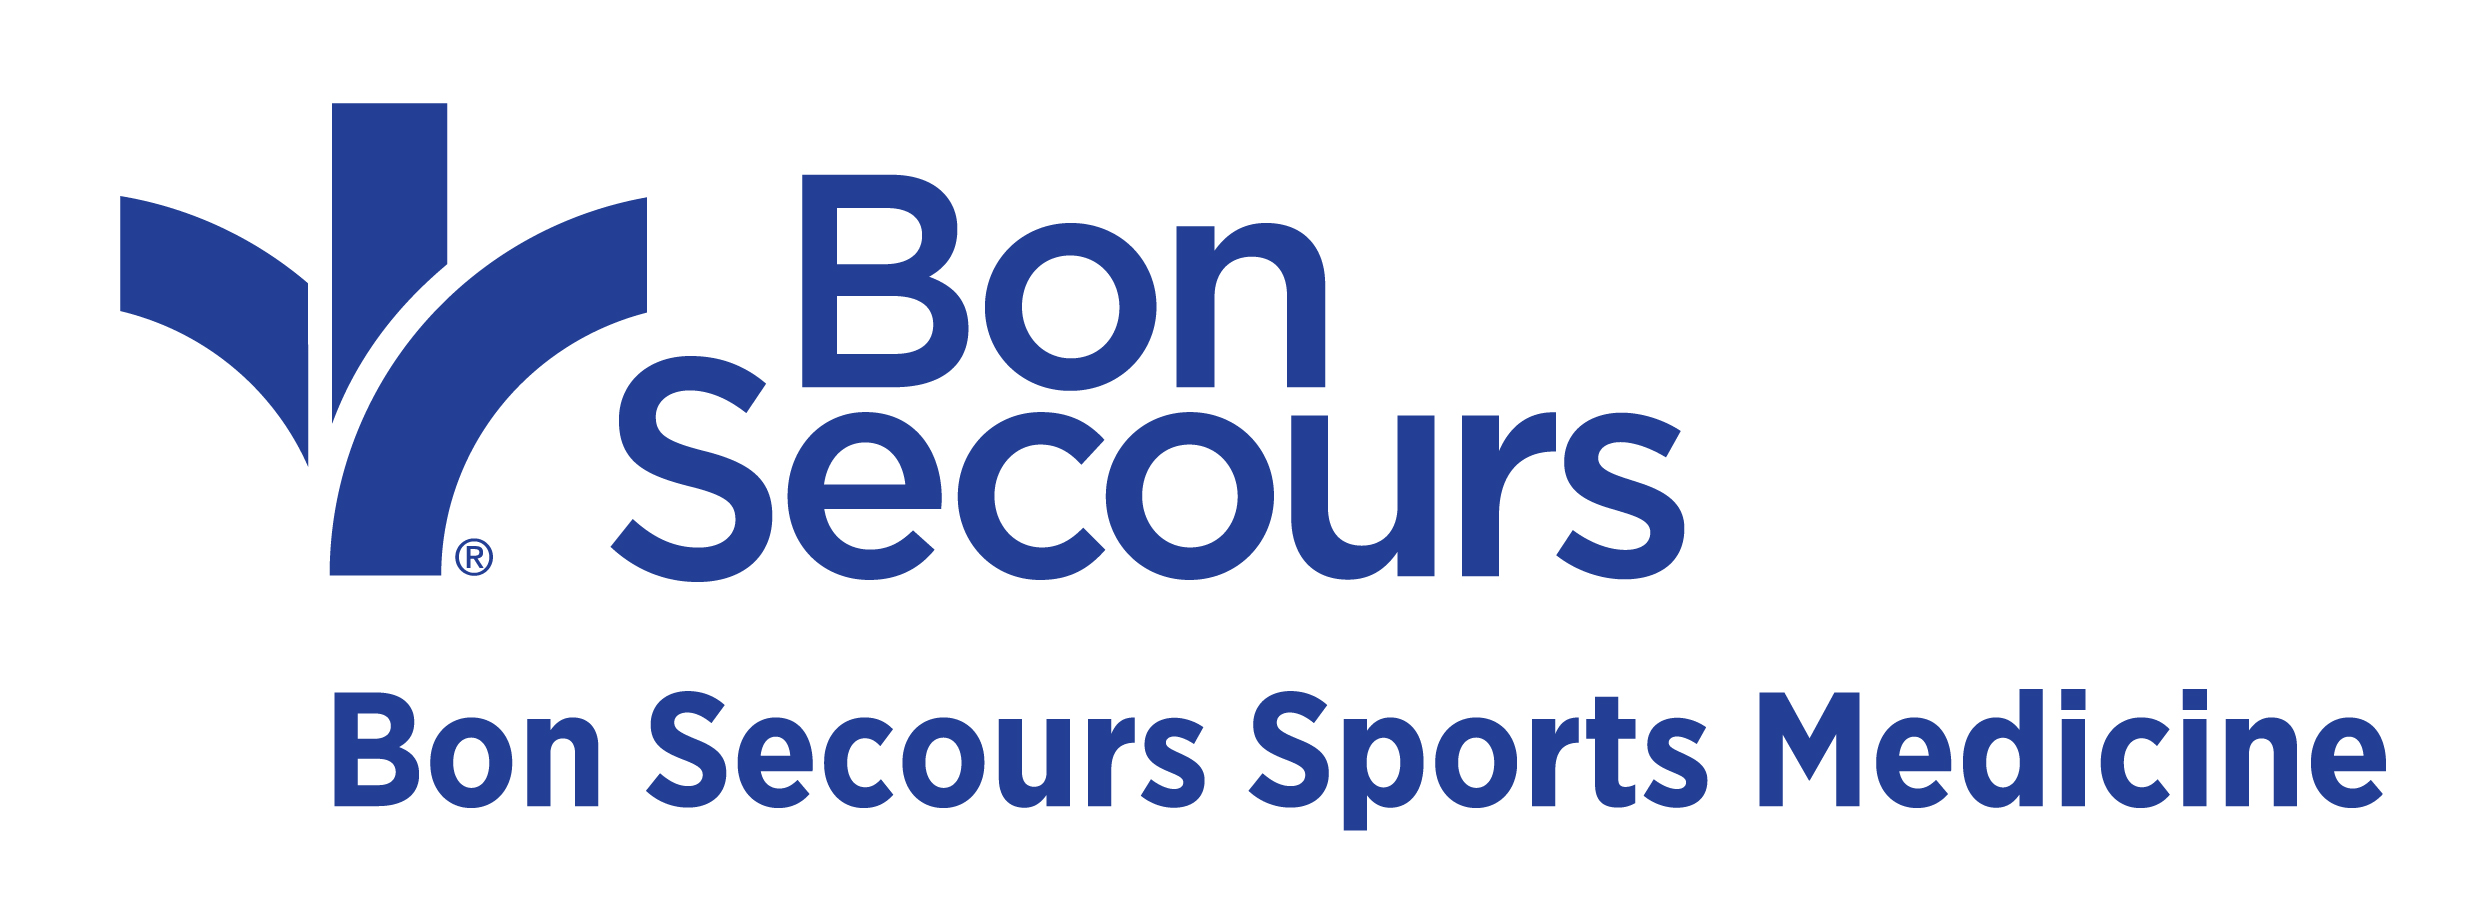 Bon Secours Saint Francis Sports Medicine